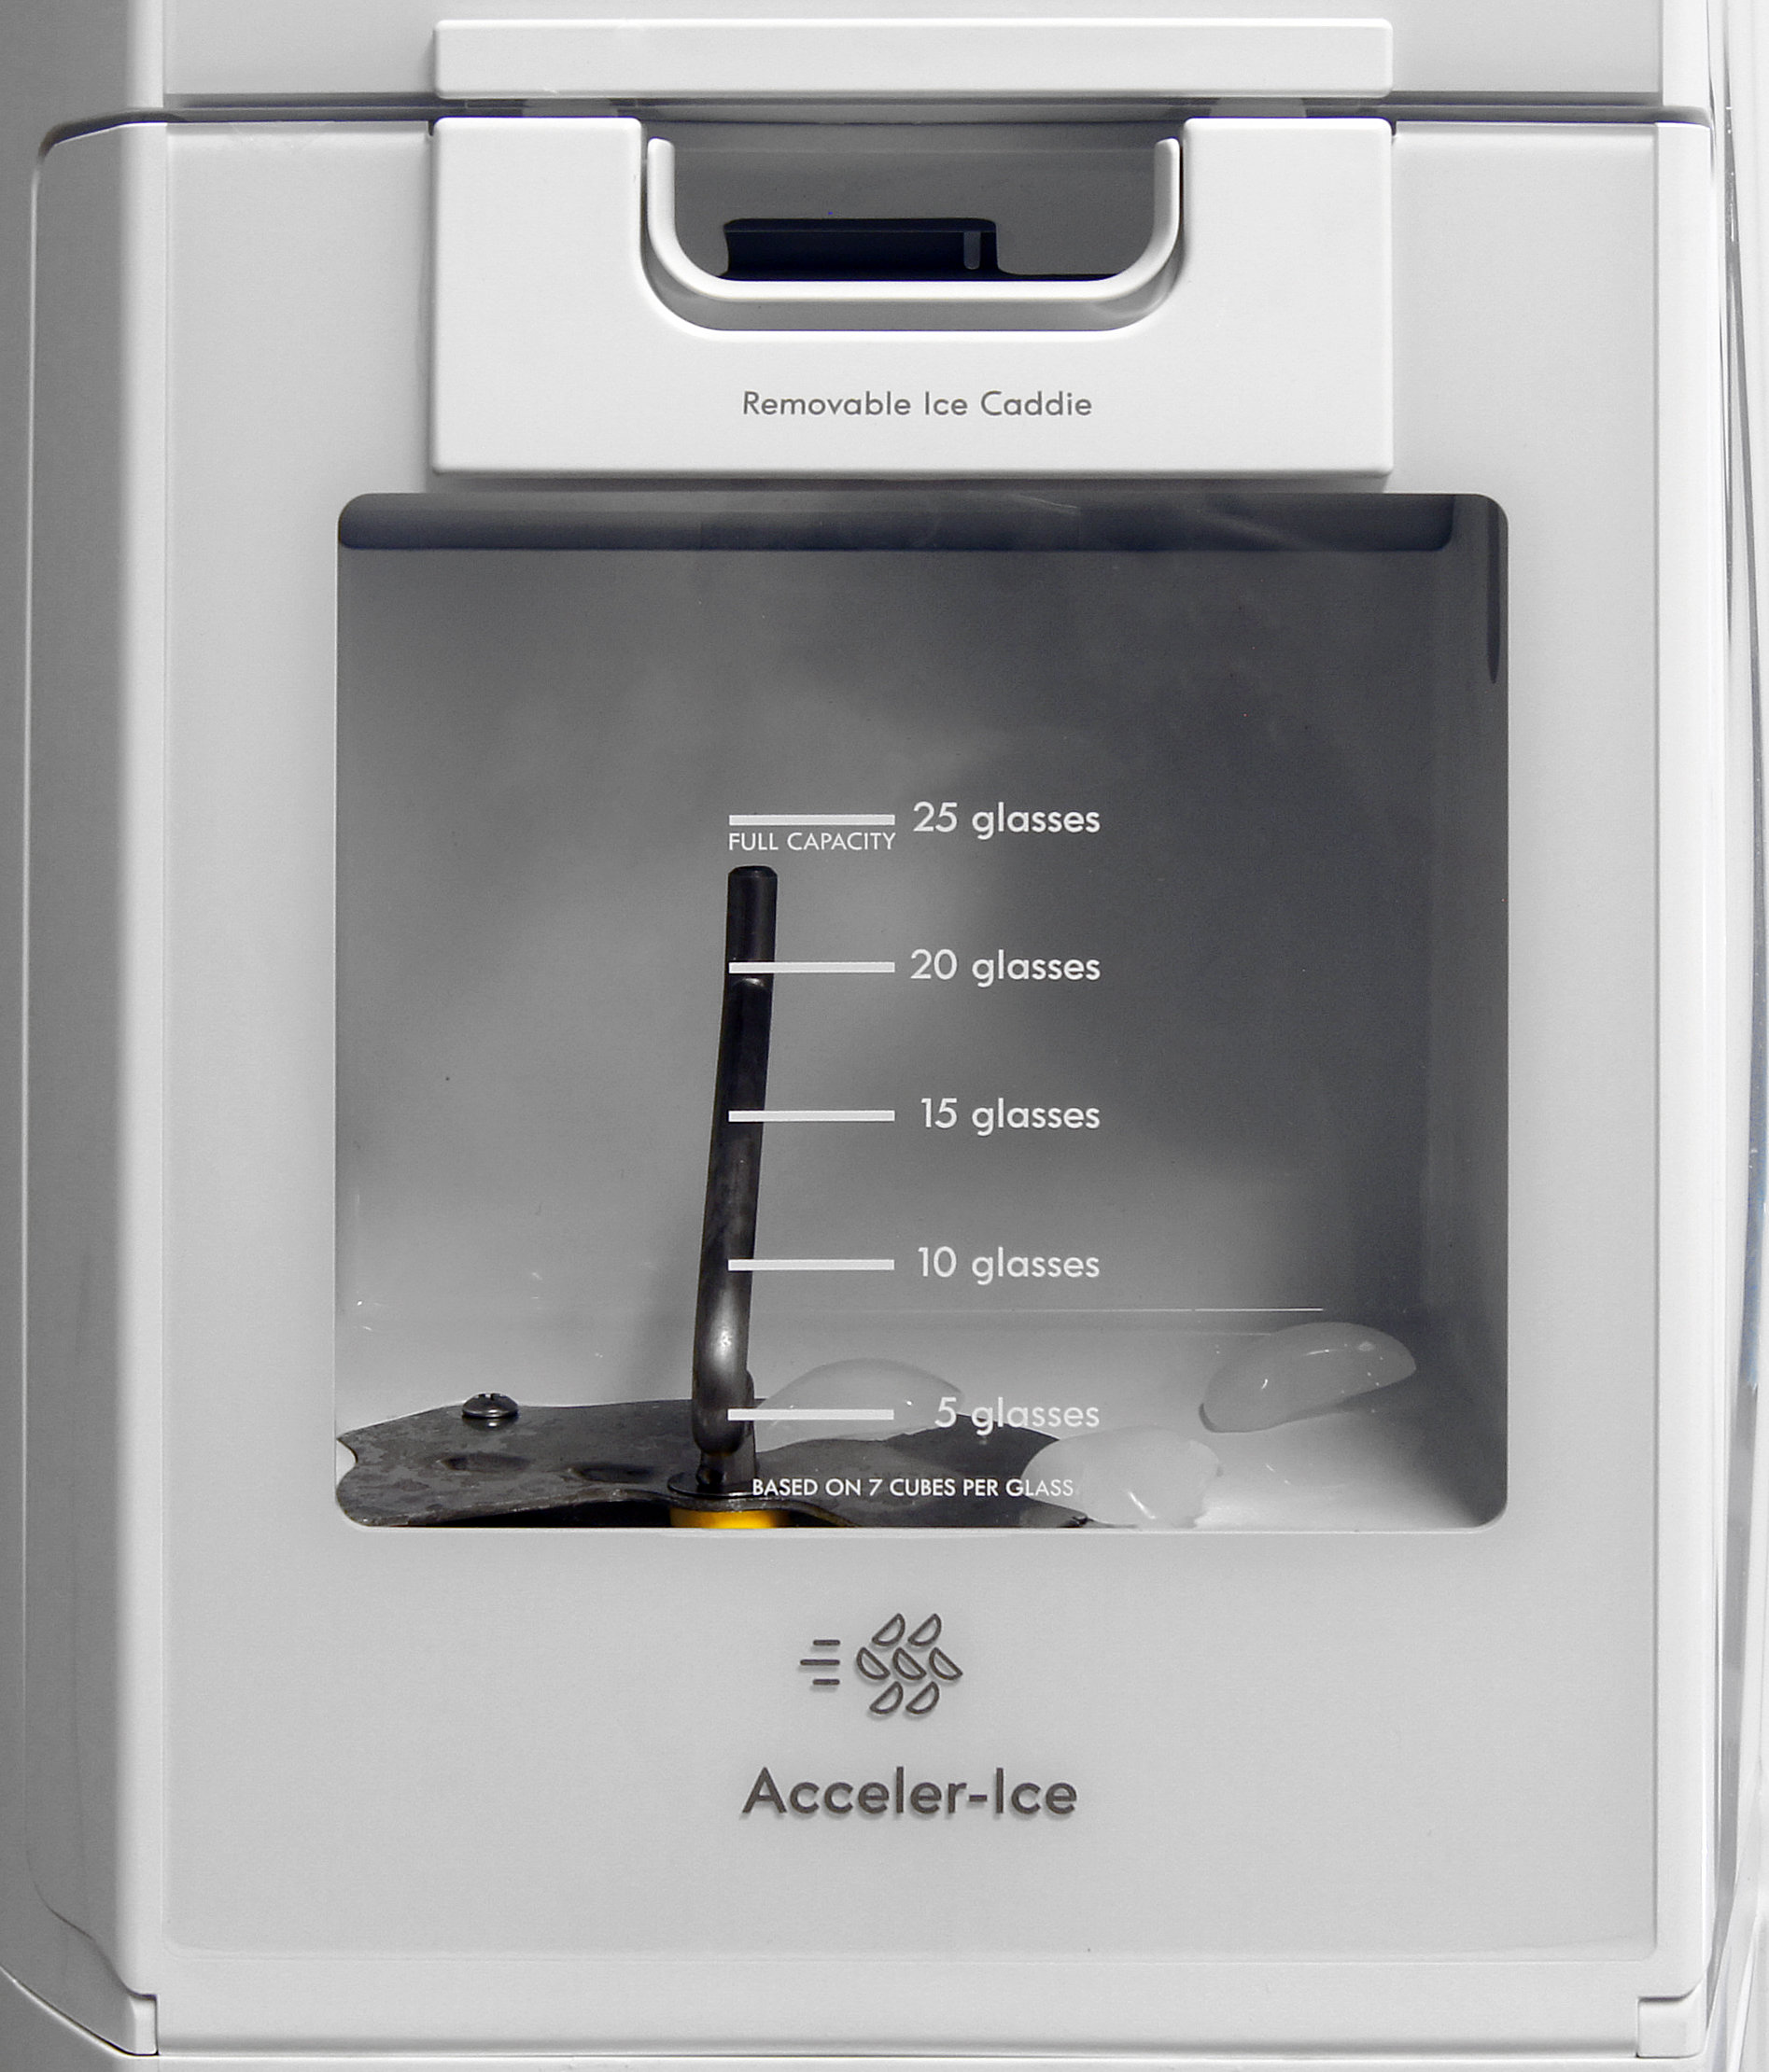 The design of the Kenmore Elite 51162's icemaker is fairly standard for this sort of model, and is quite easy to remove for bulk ice access.